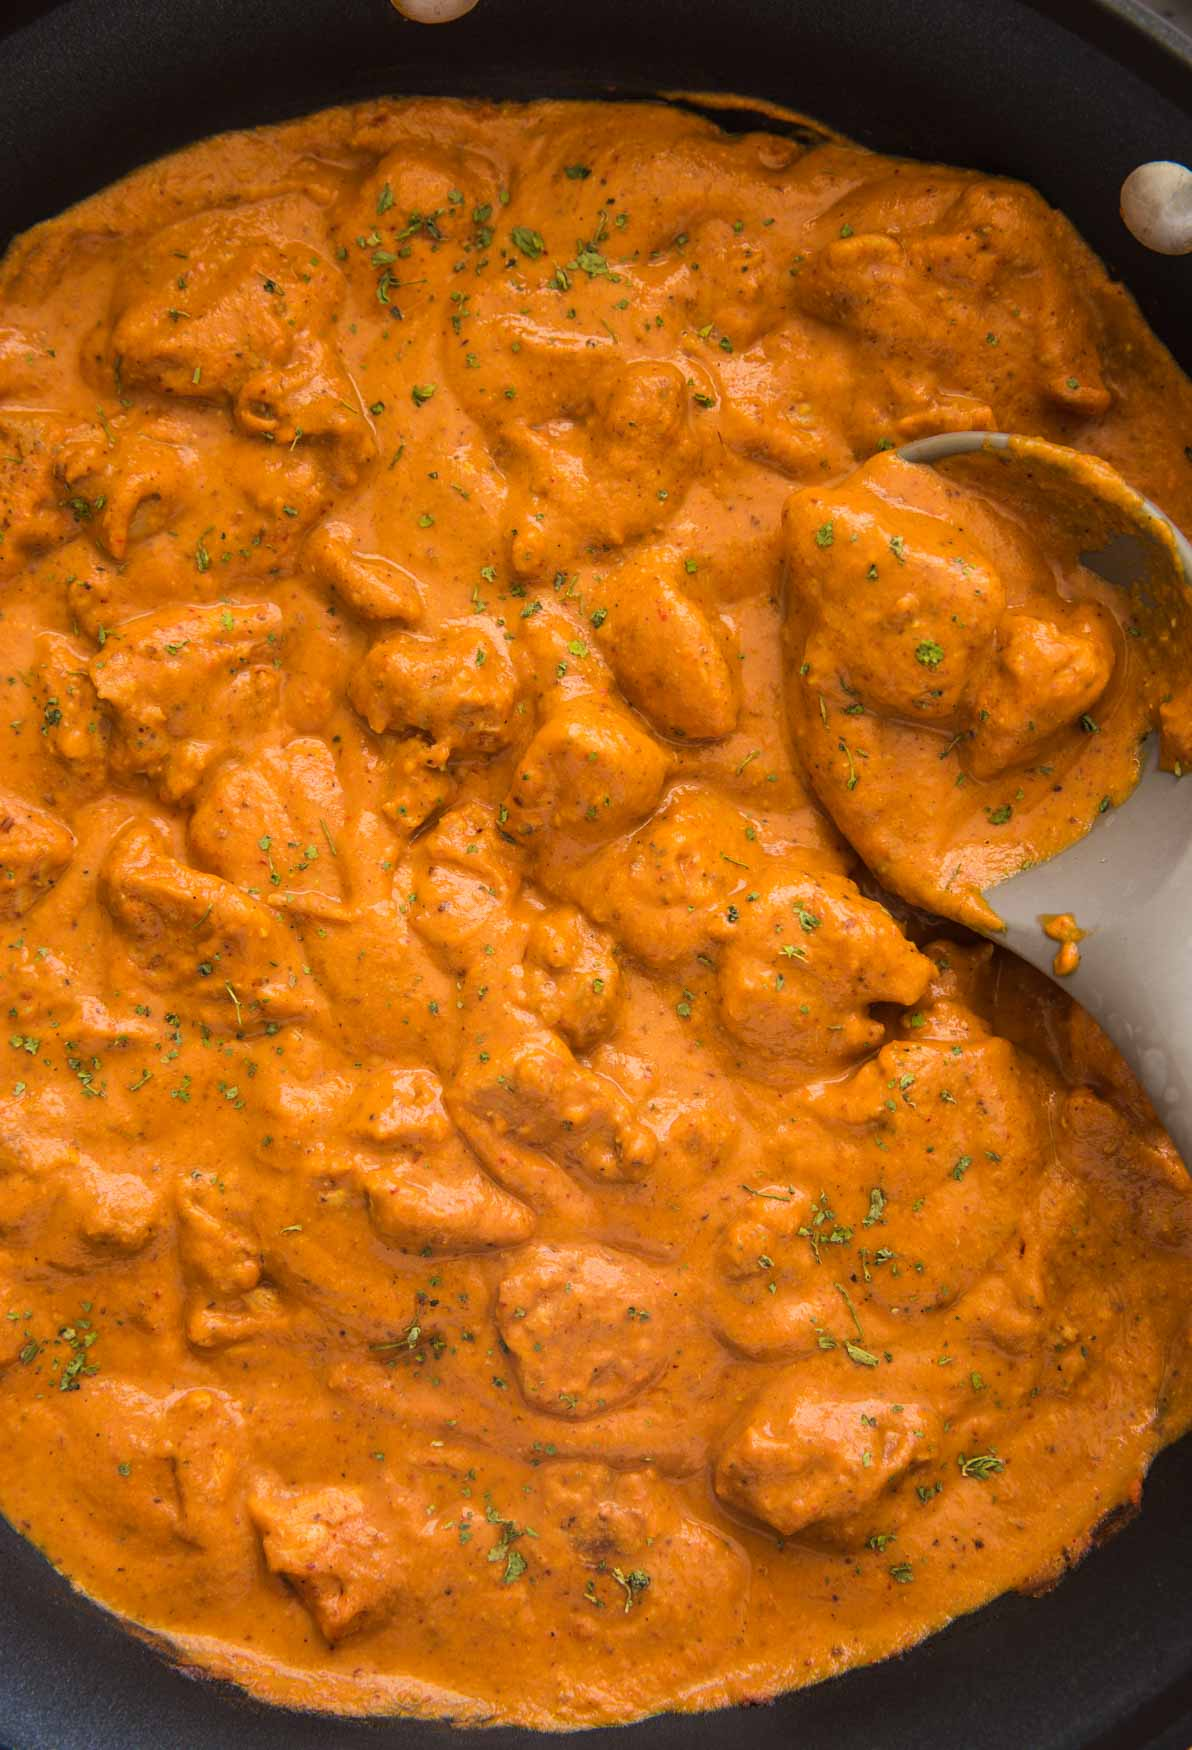 Restaurant style chicken tikka masala in a large skillet